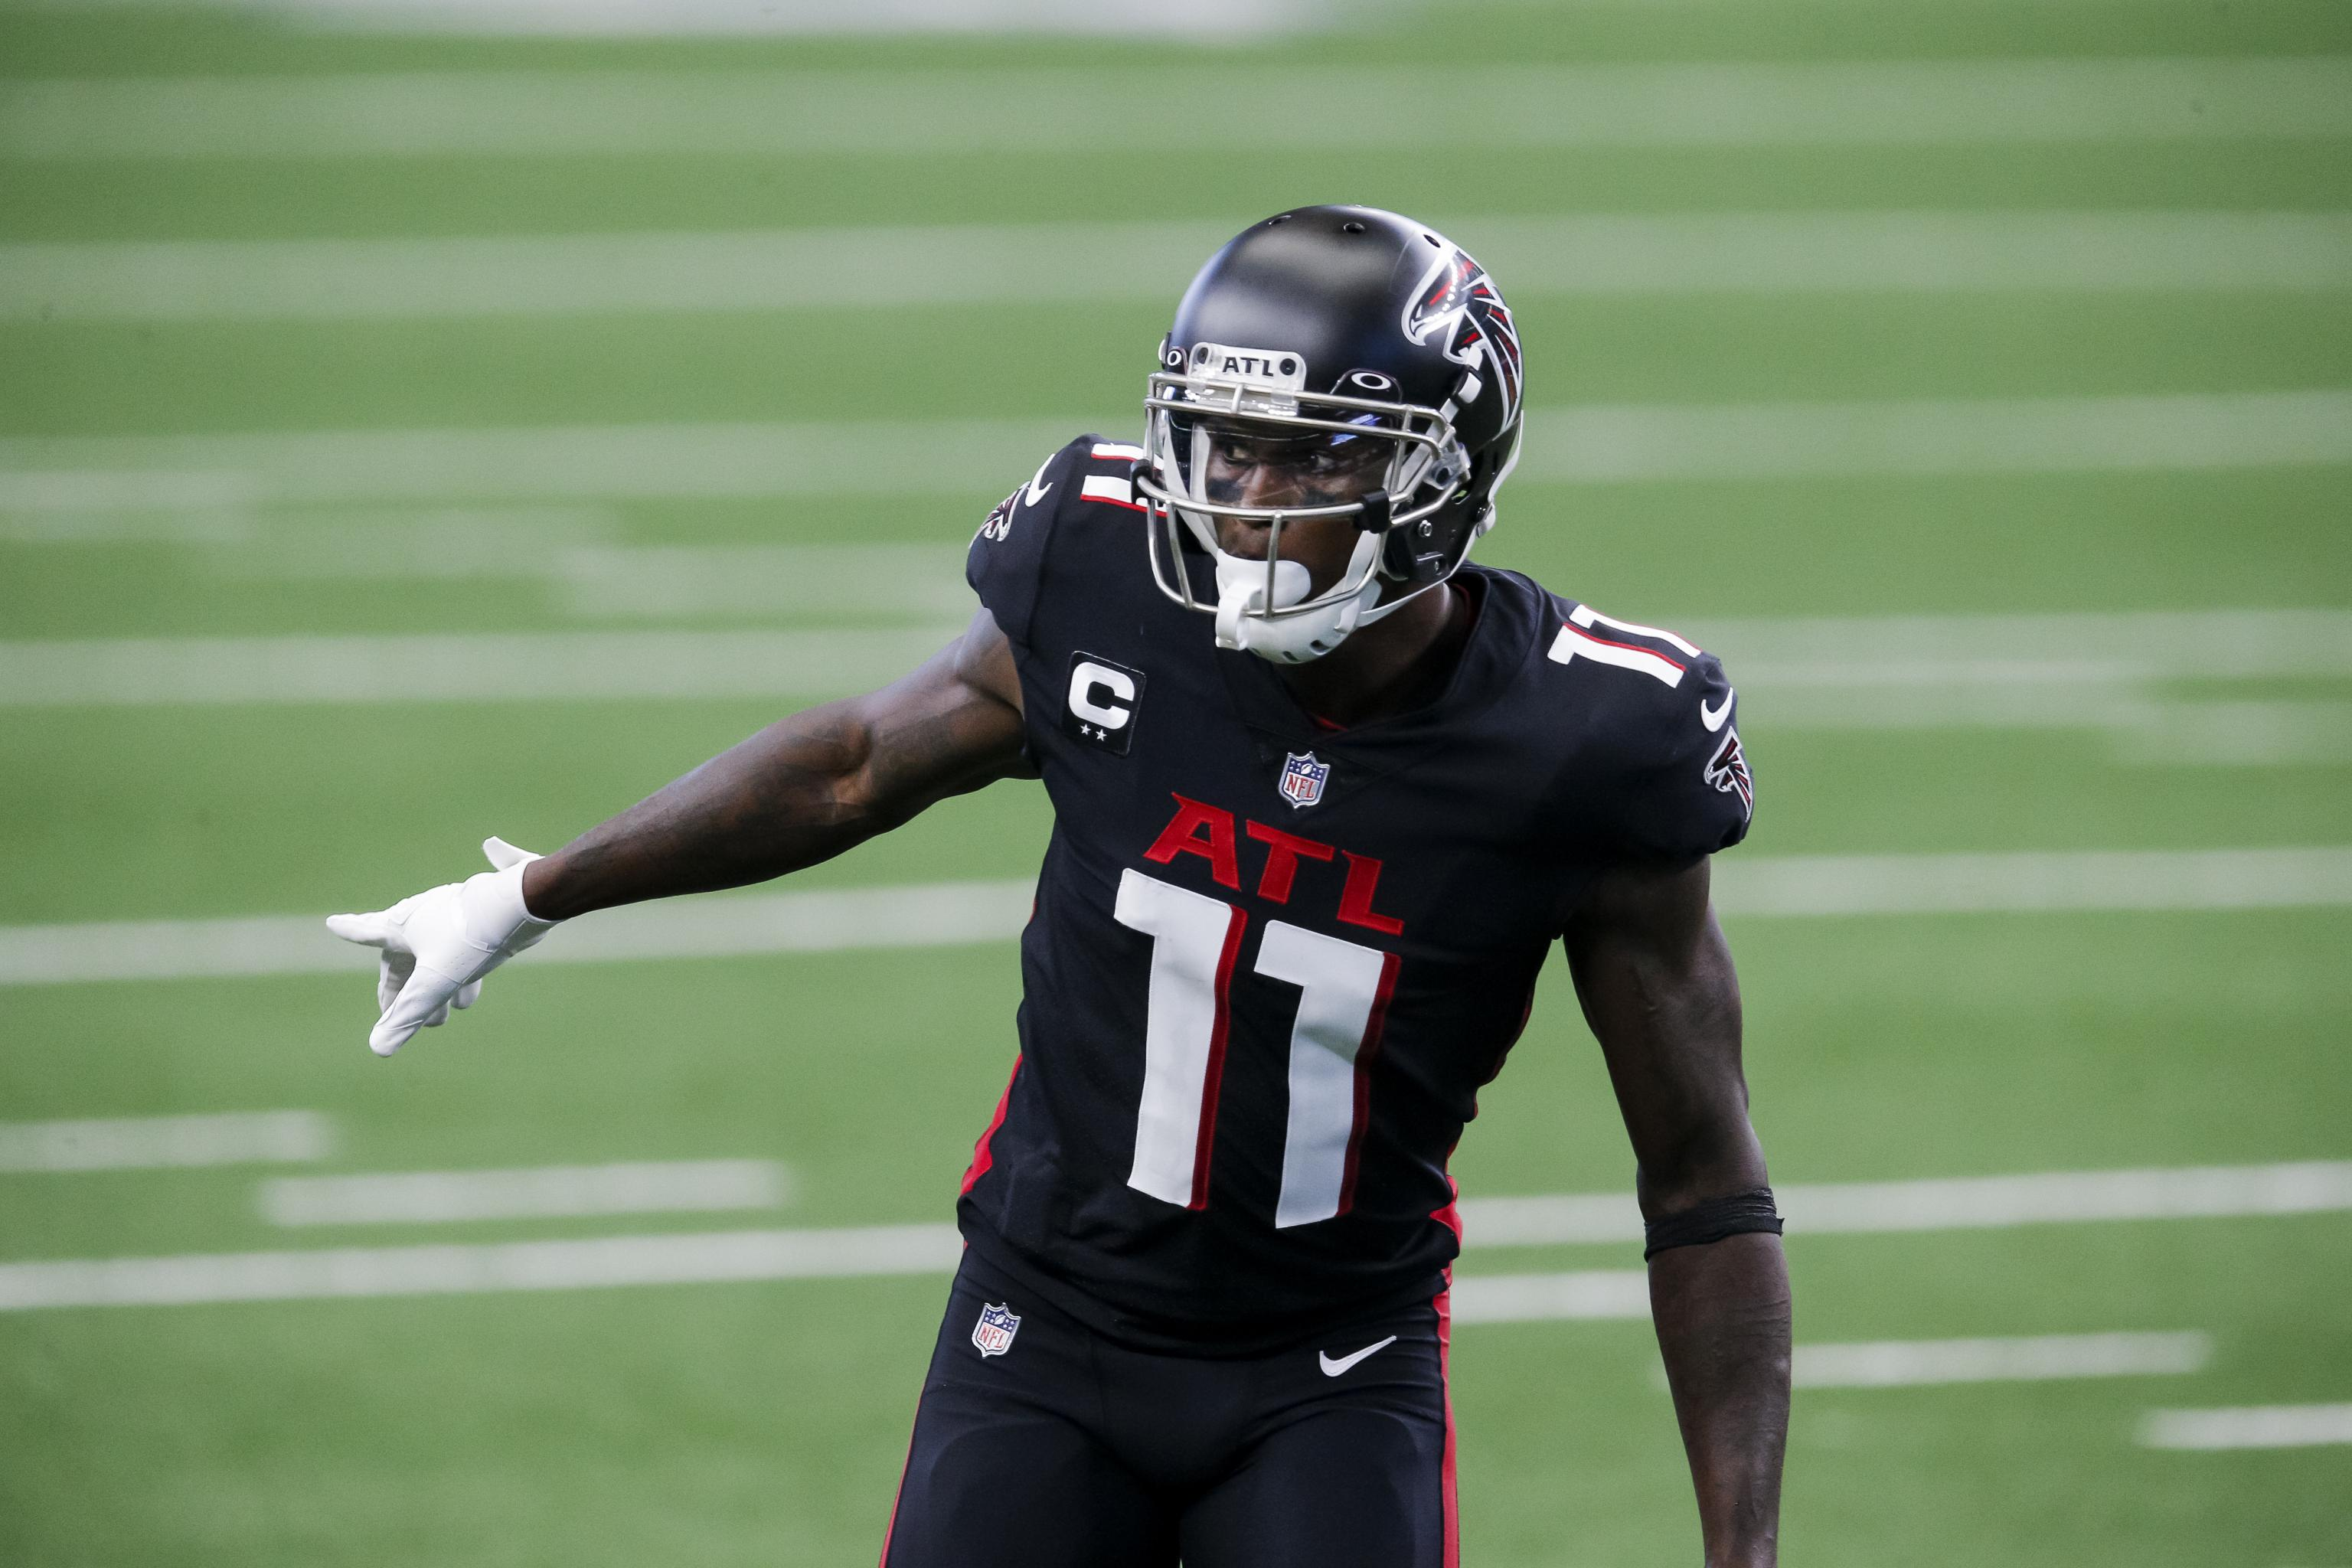 Report Julio Jones Status For Falcons Vs Bears Up In The Air After Injury Bleacher Report Latest News Videos And Highlights